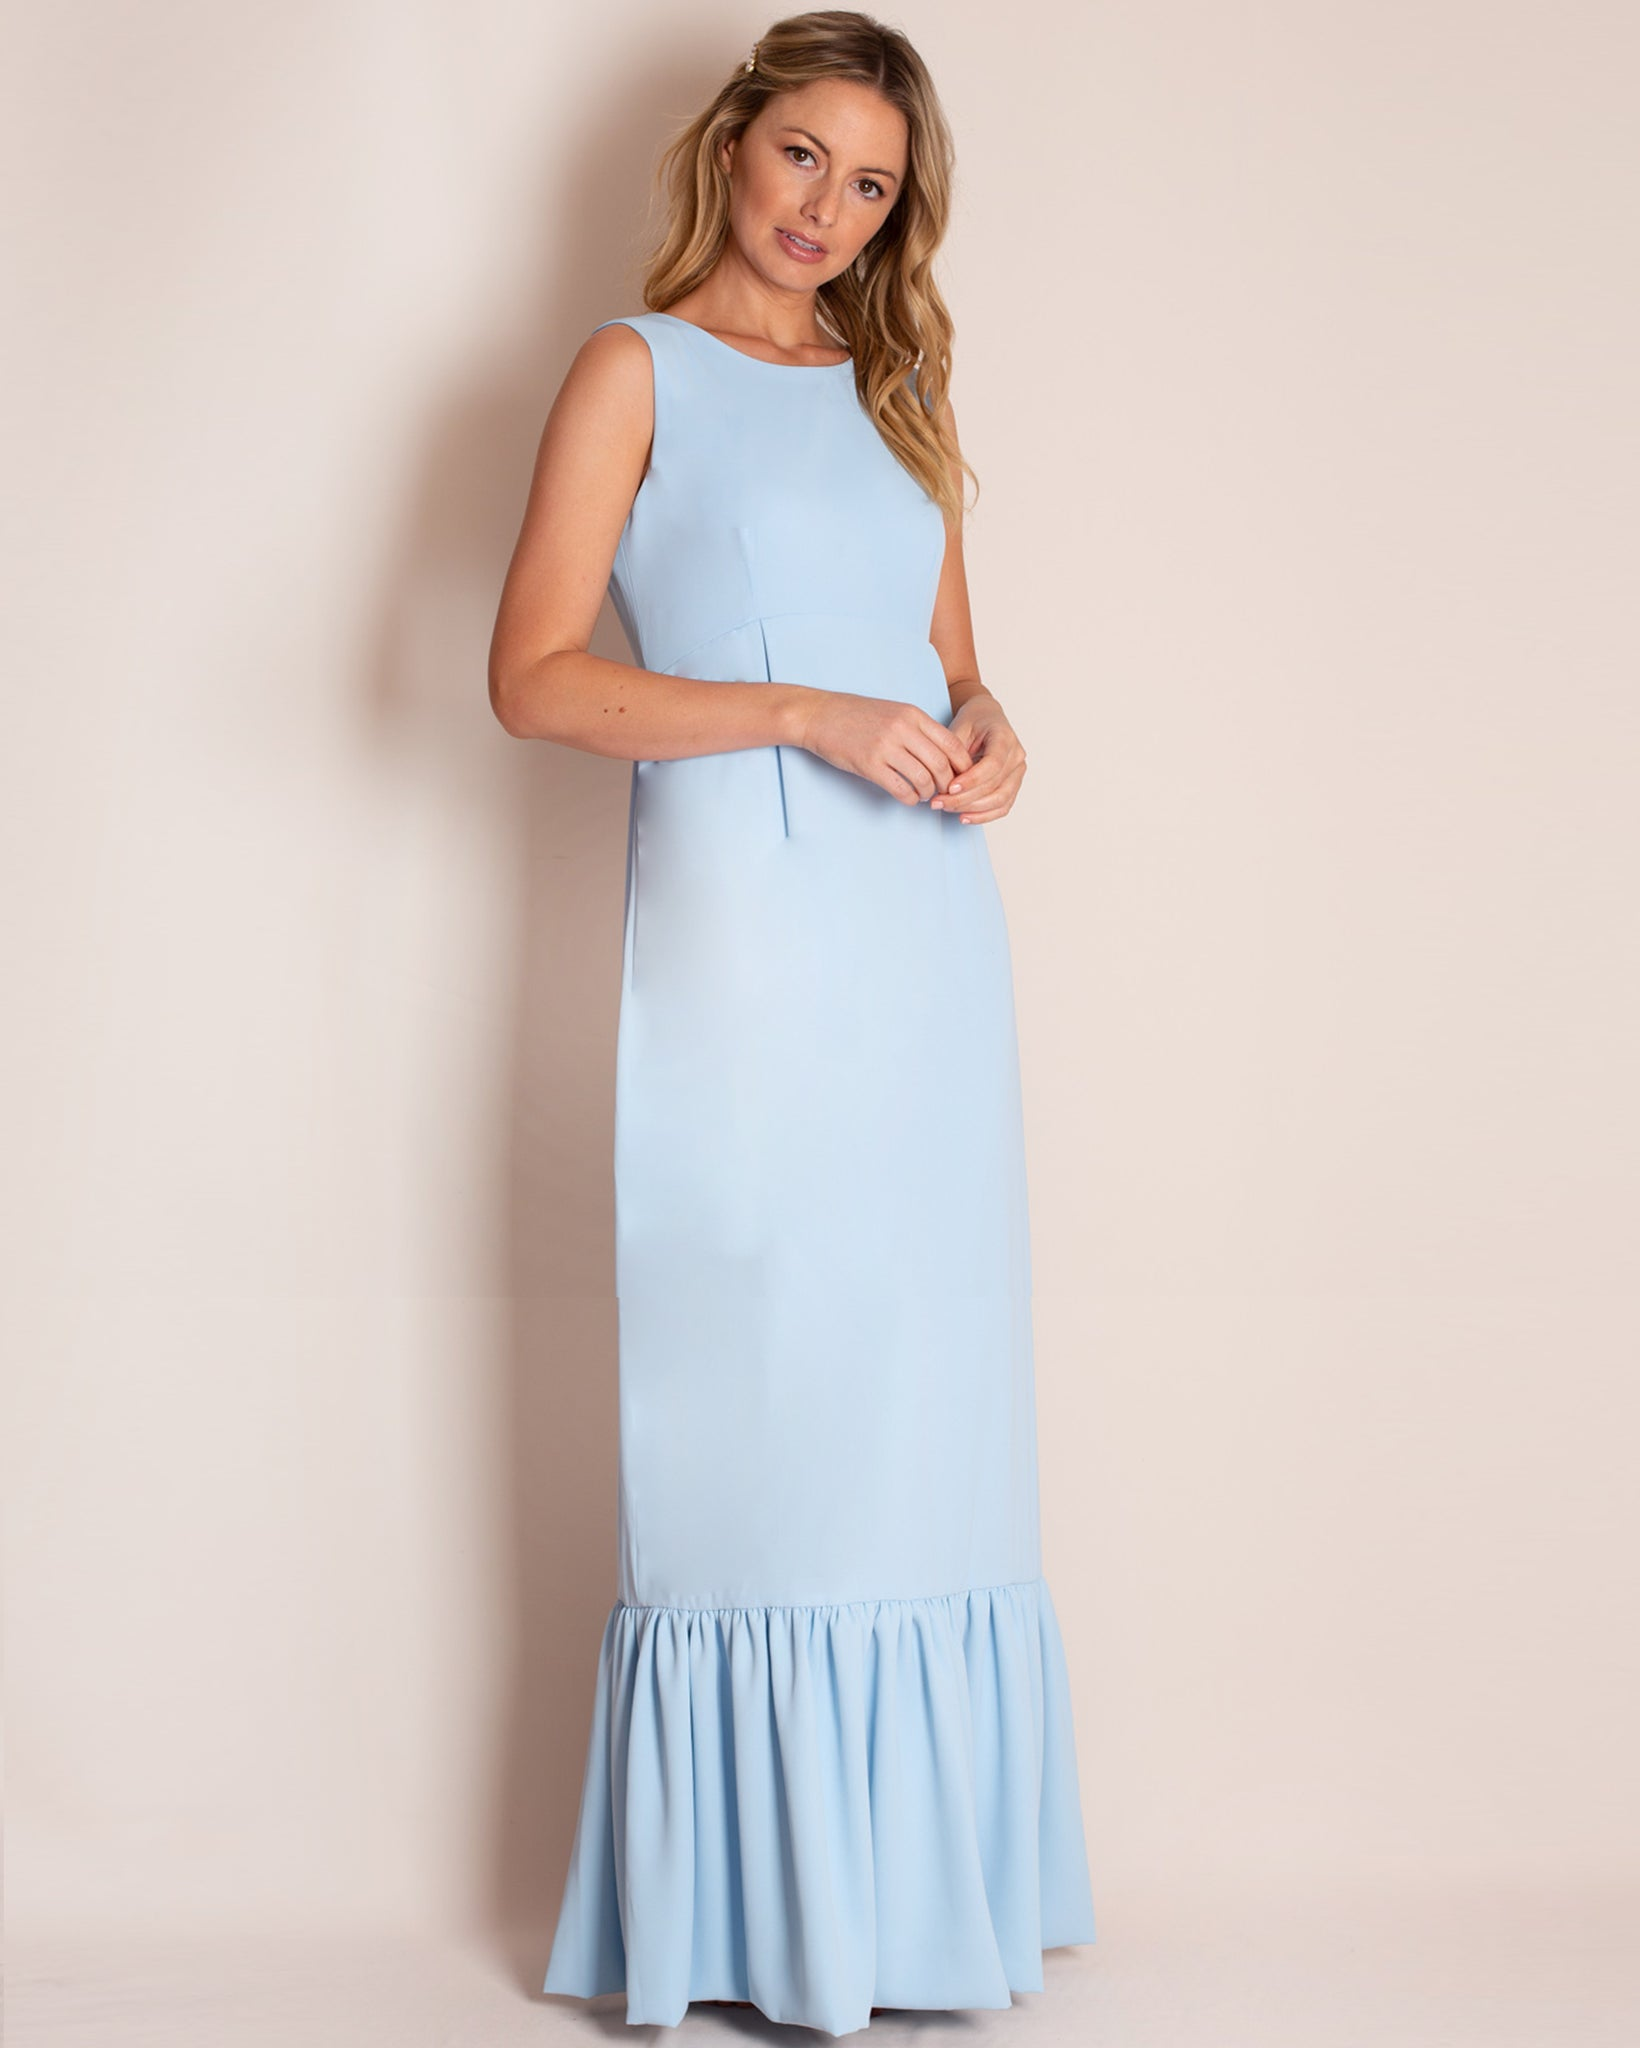 The Libbie Gown